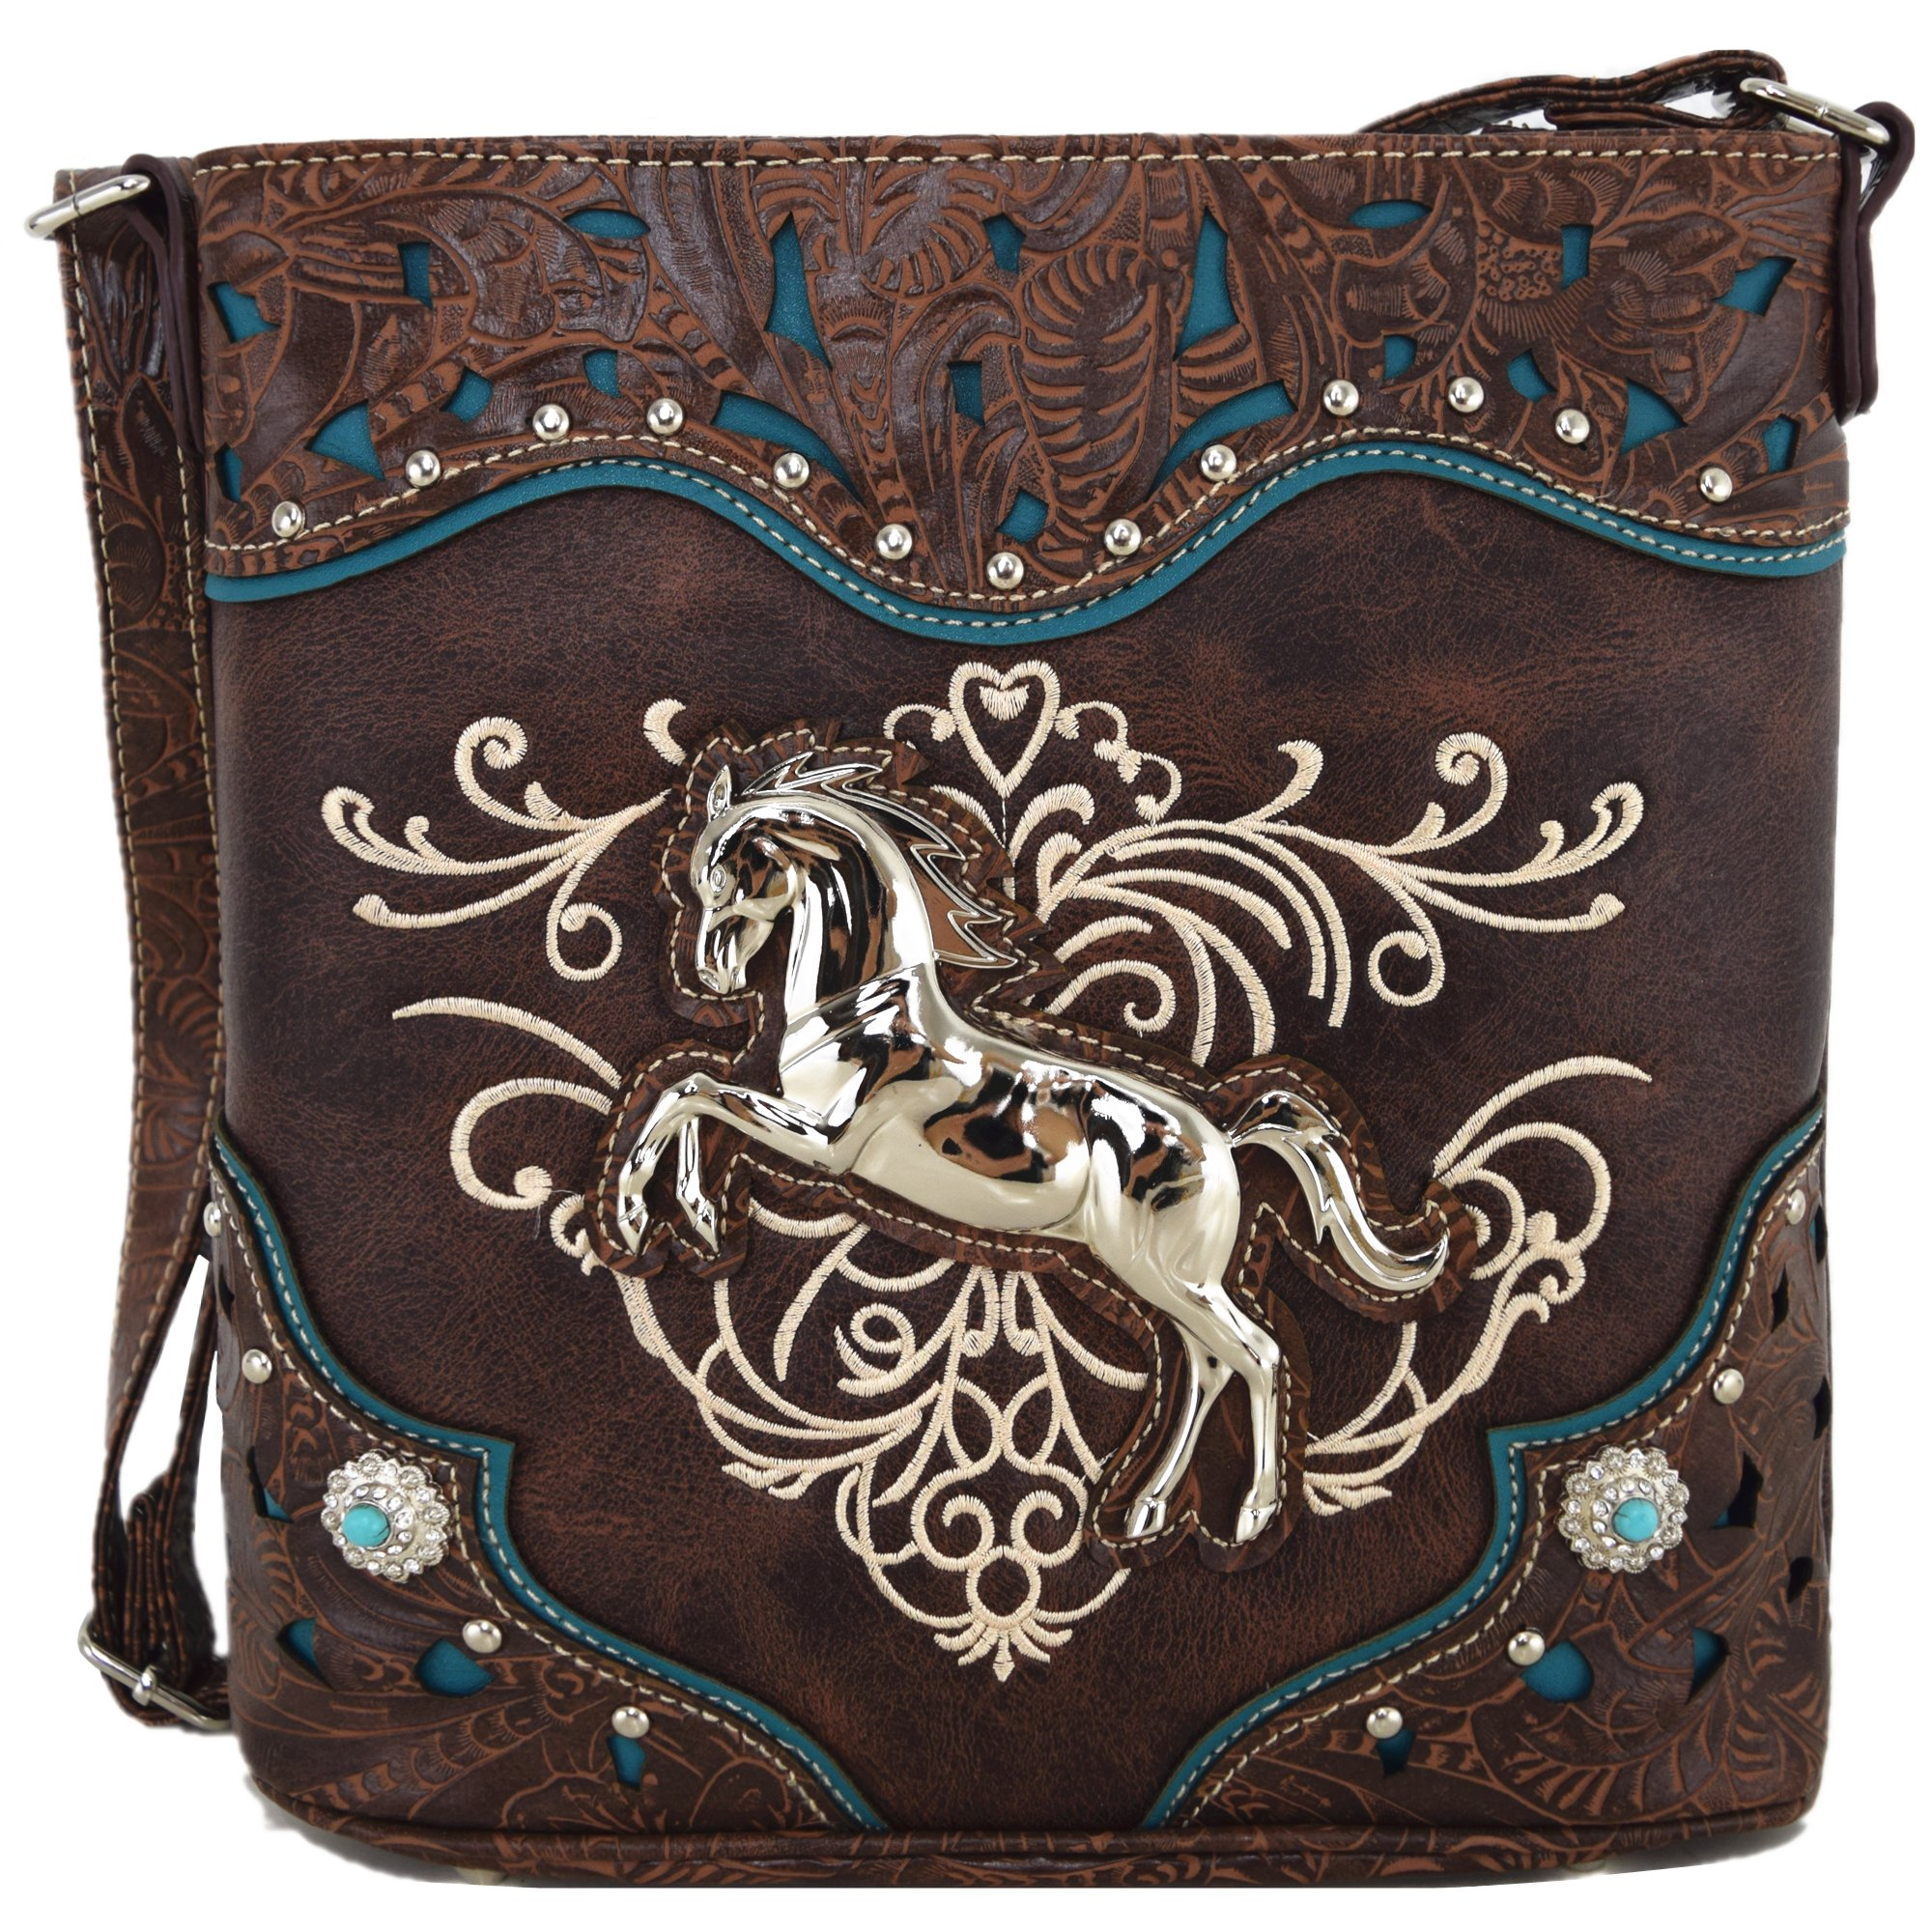 Western Cowgirl Style Horse Cross Body Handbags Concealed Carry Purses Country Women Single Shoulder Bag (Coffee)